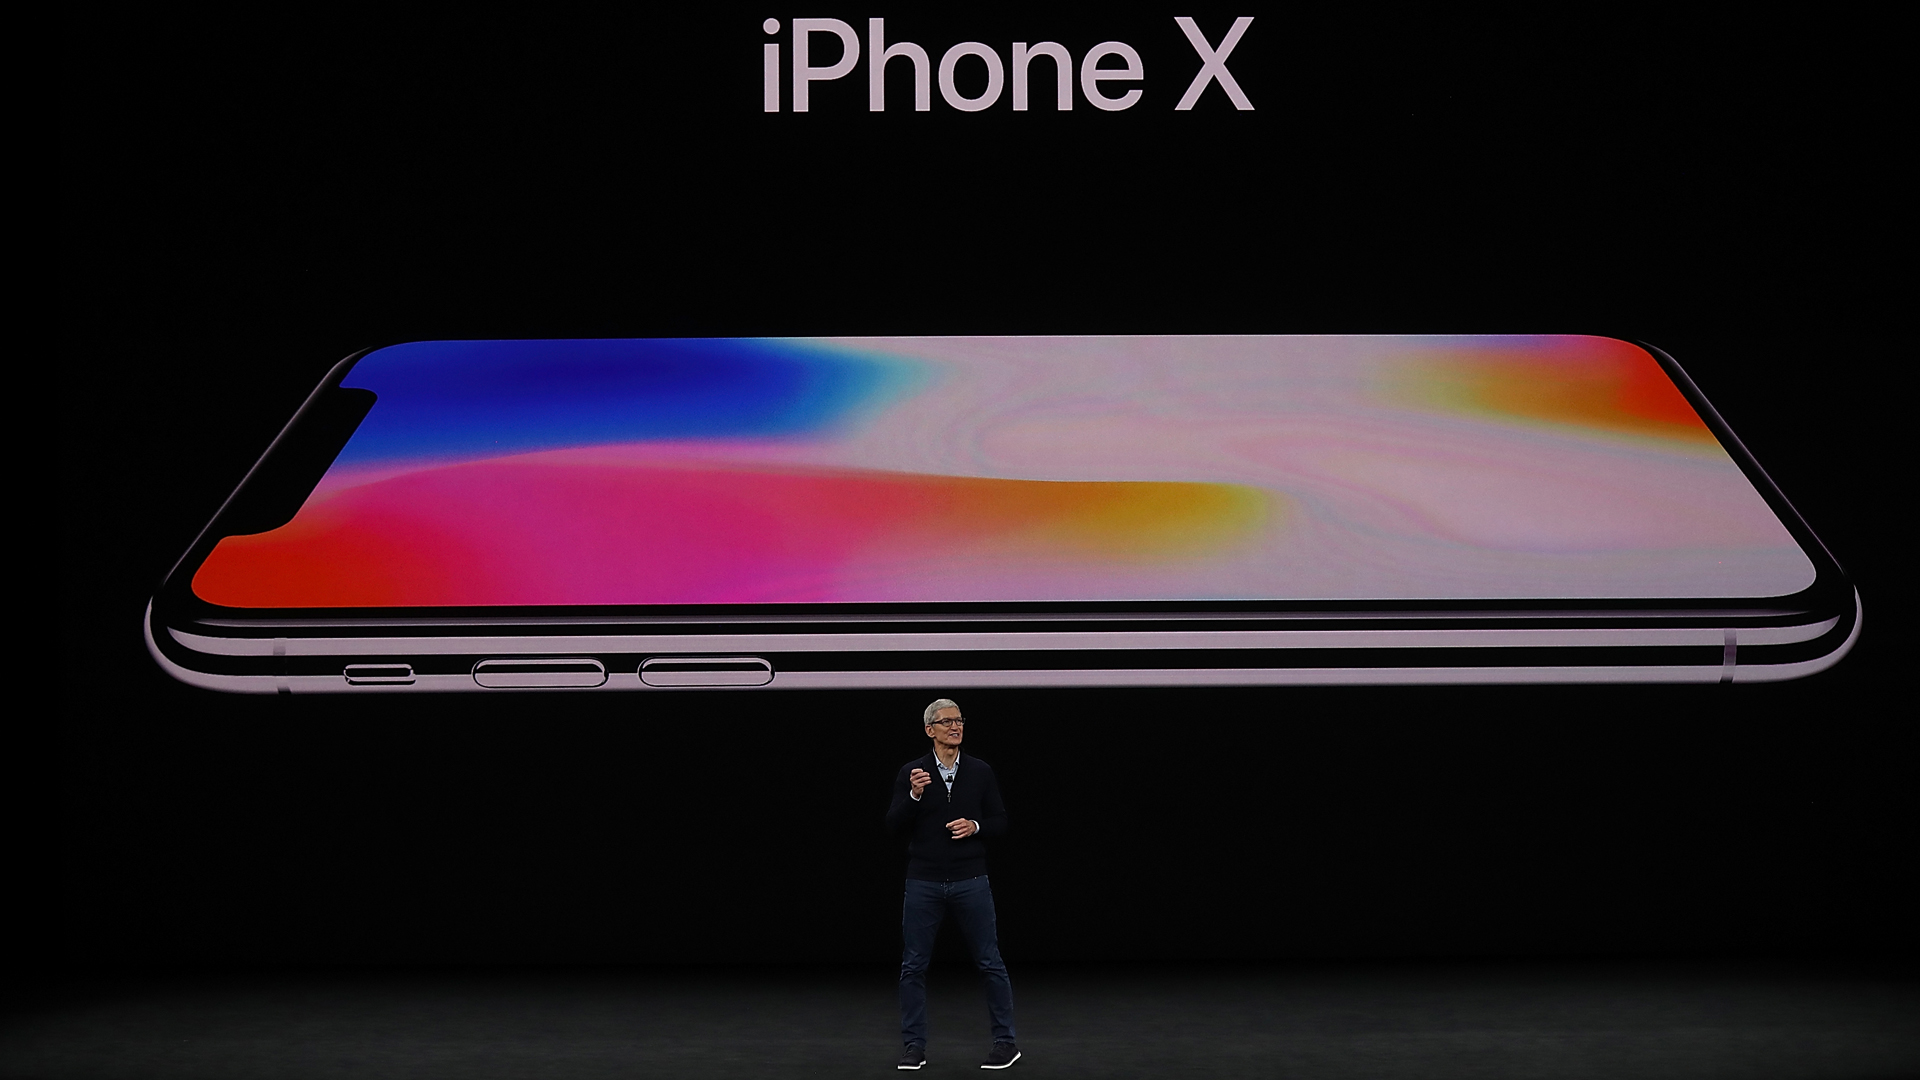 Apple CEO Tim Cook announces the new iPhone X during an Apple special event at the Steve Jobs Theatre on the Apple Park campus on Sept. 12, 2017 in Cupertino. (Credit: Justin Sullivan/Getty Images)